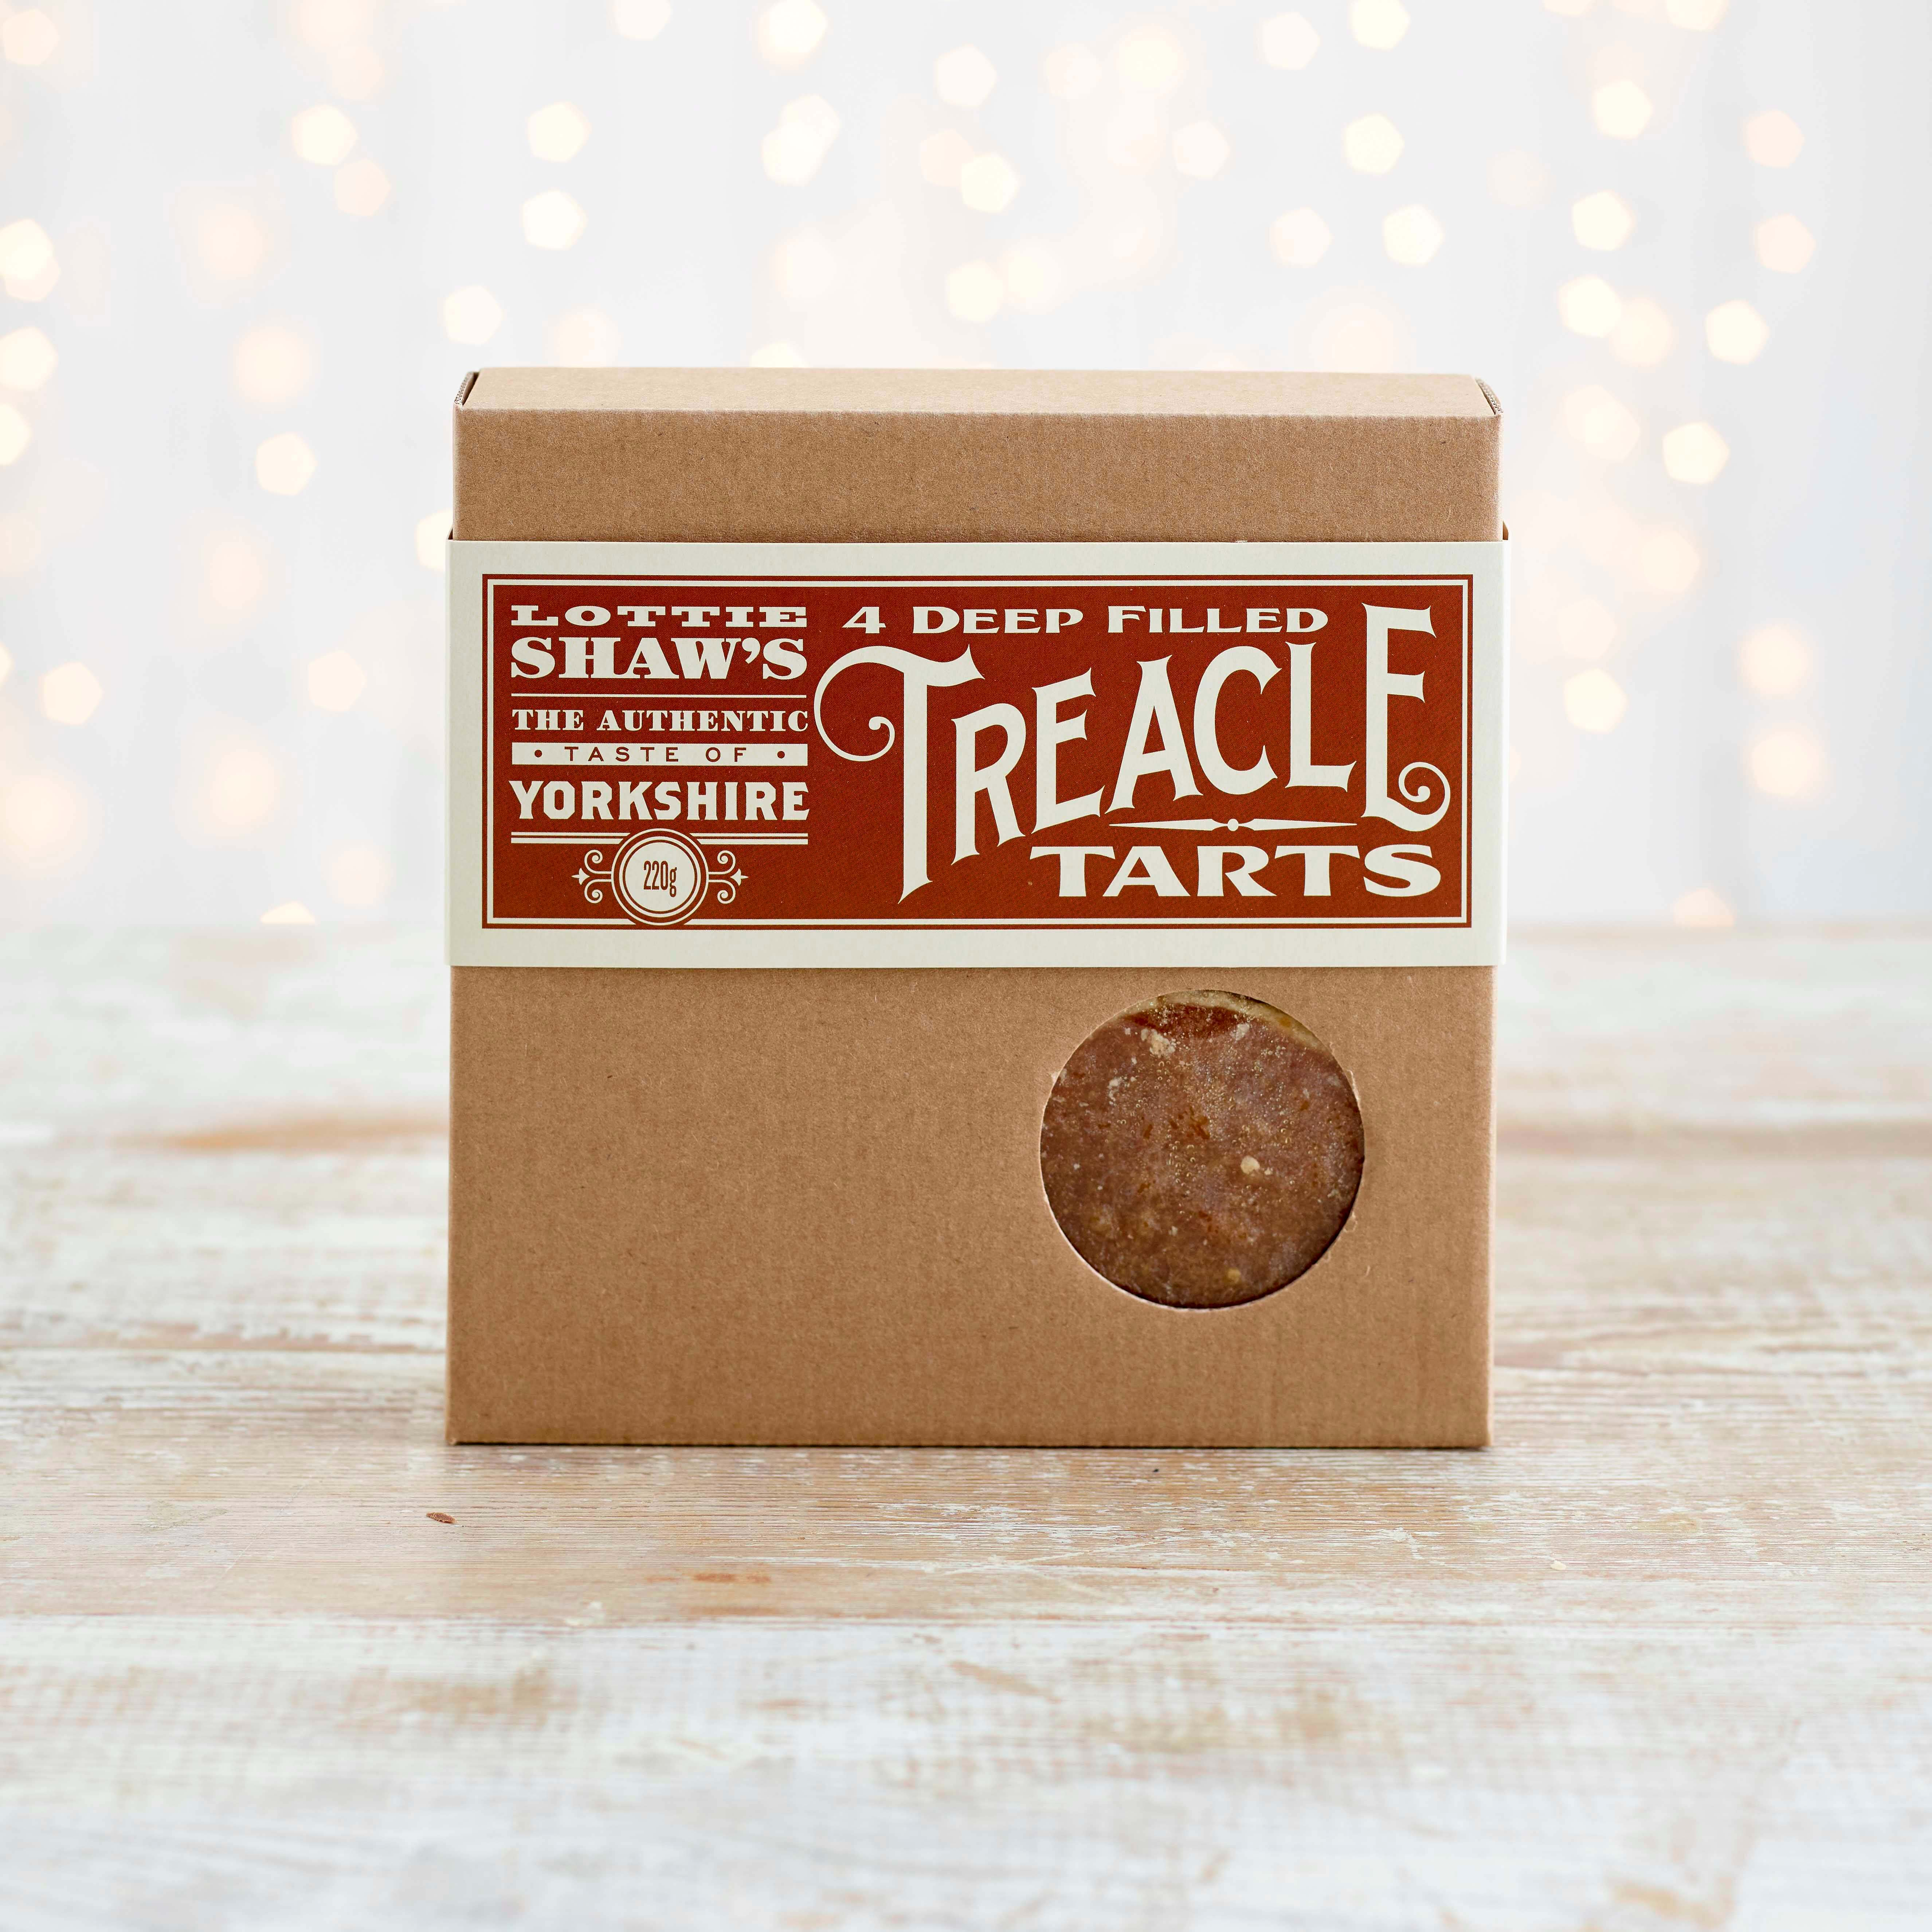 Lottie Shaw's Treacle Tarts, 4 Pack, 220g